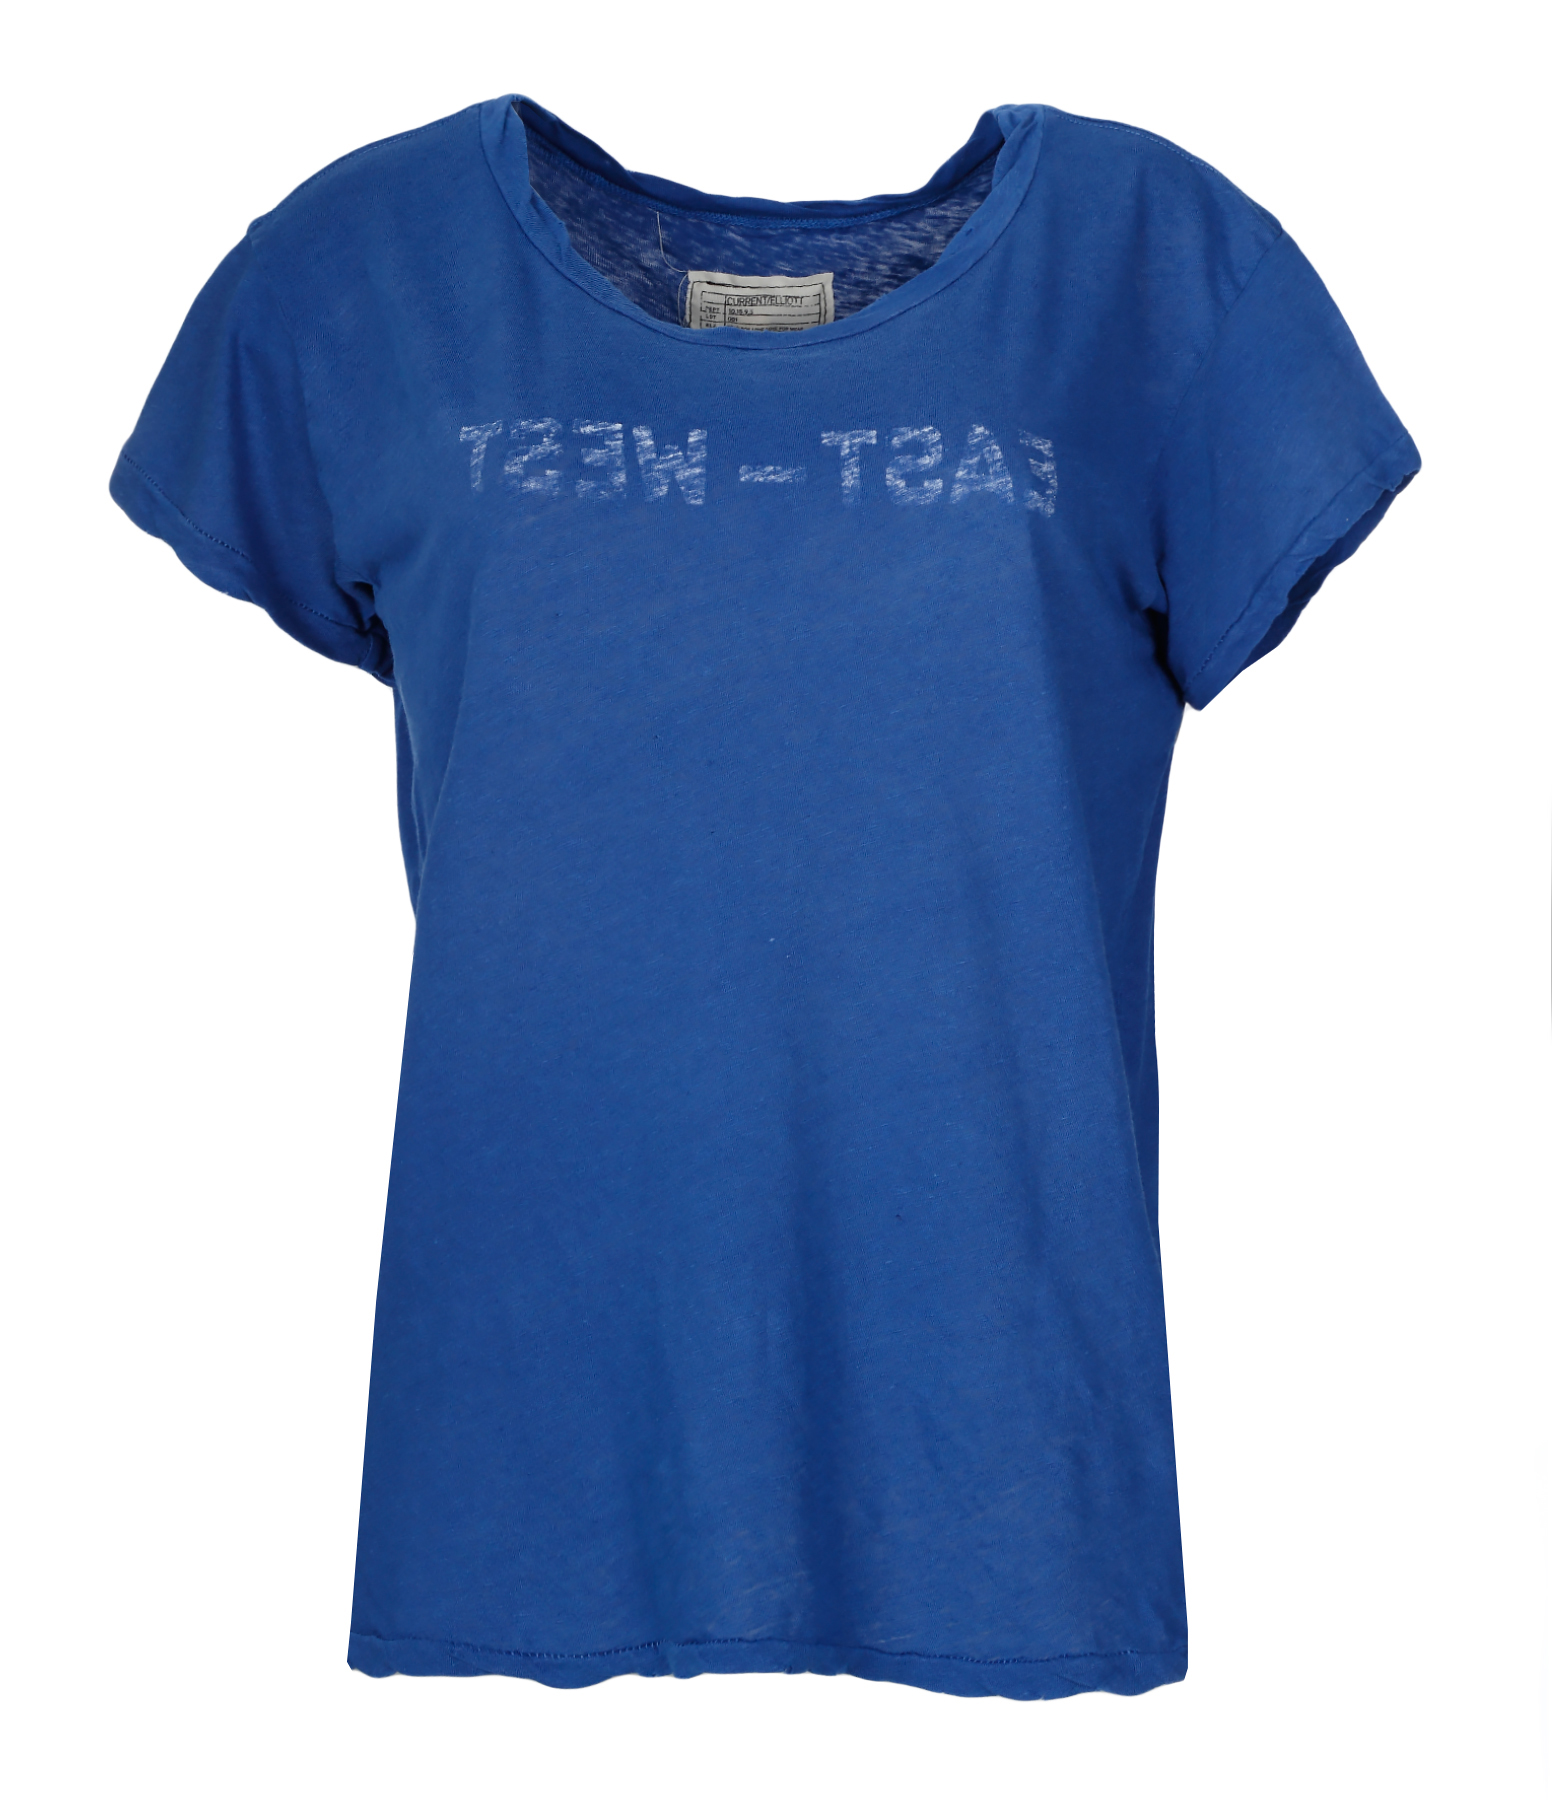 Tee-shirt The Crew Neck Blue East West